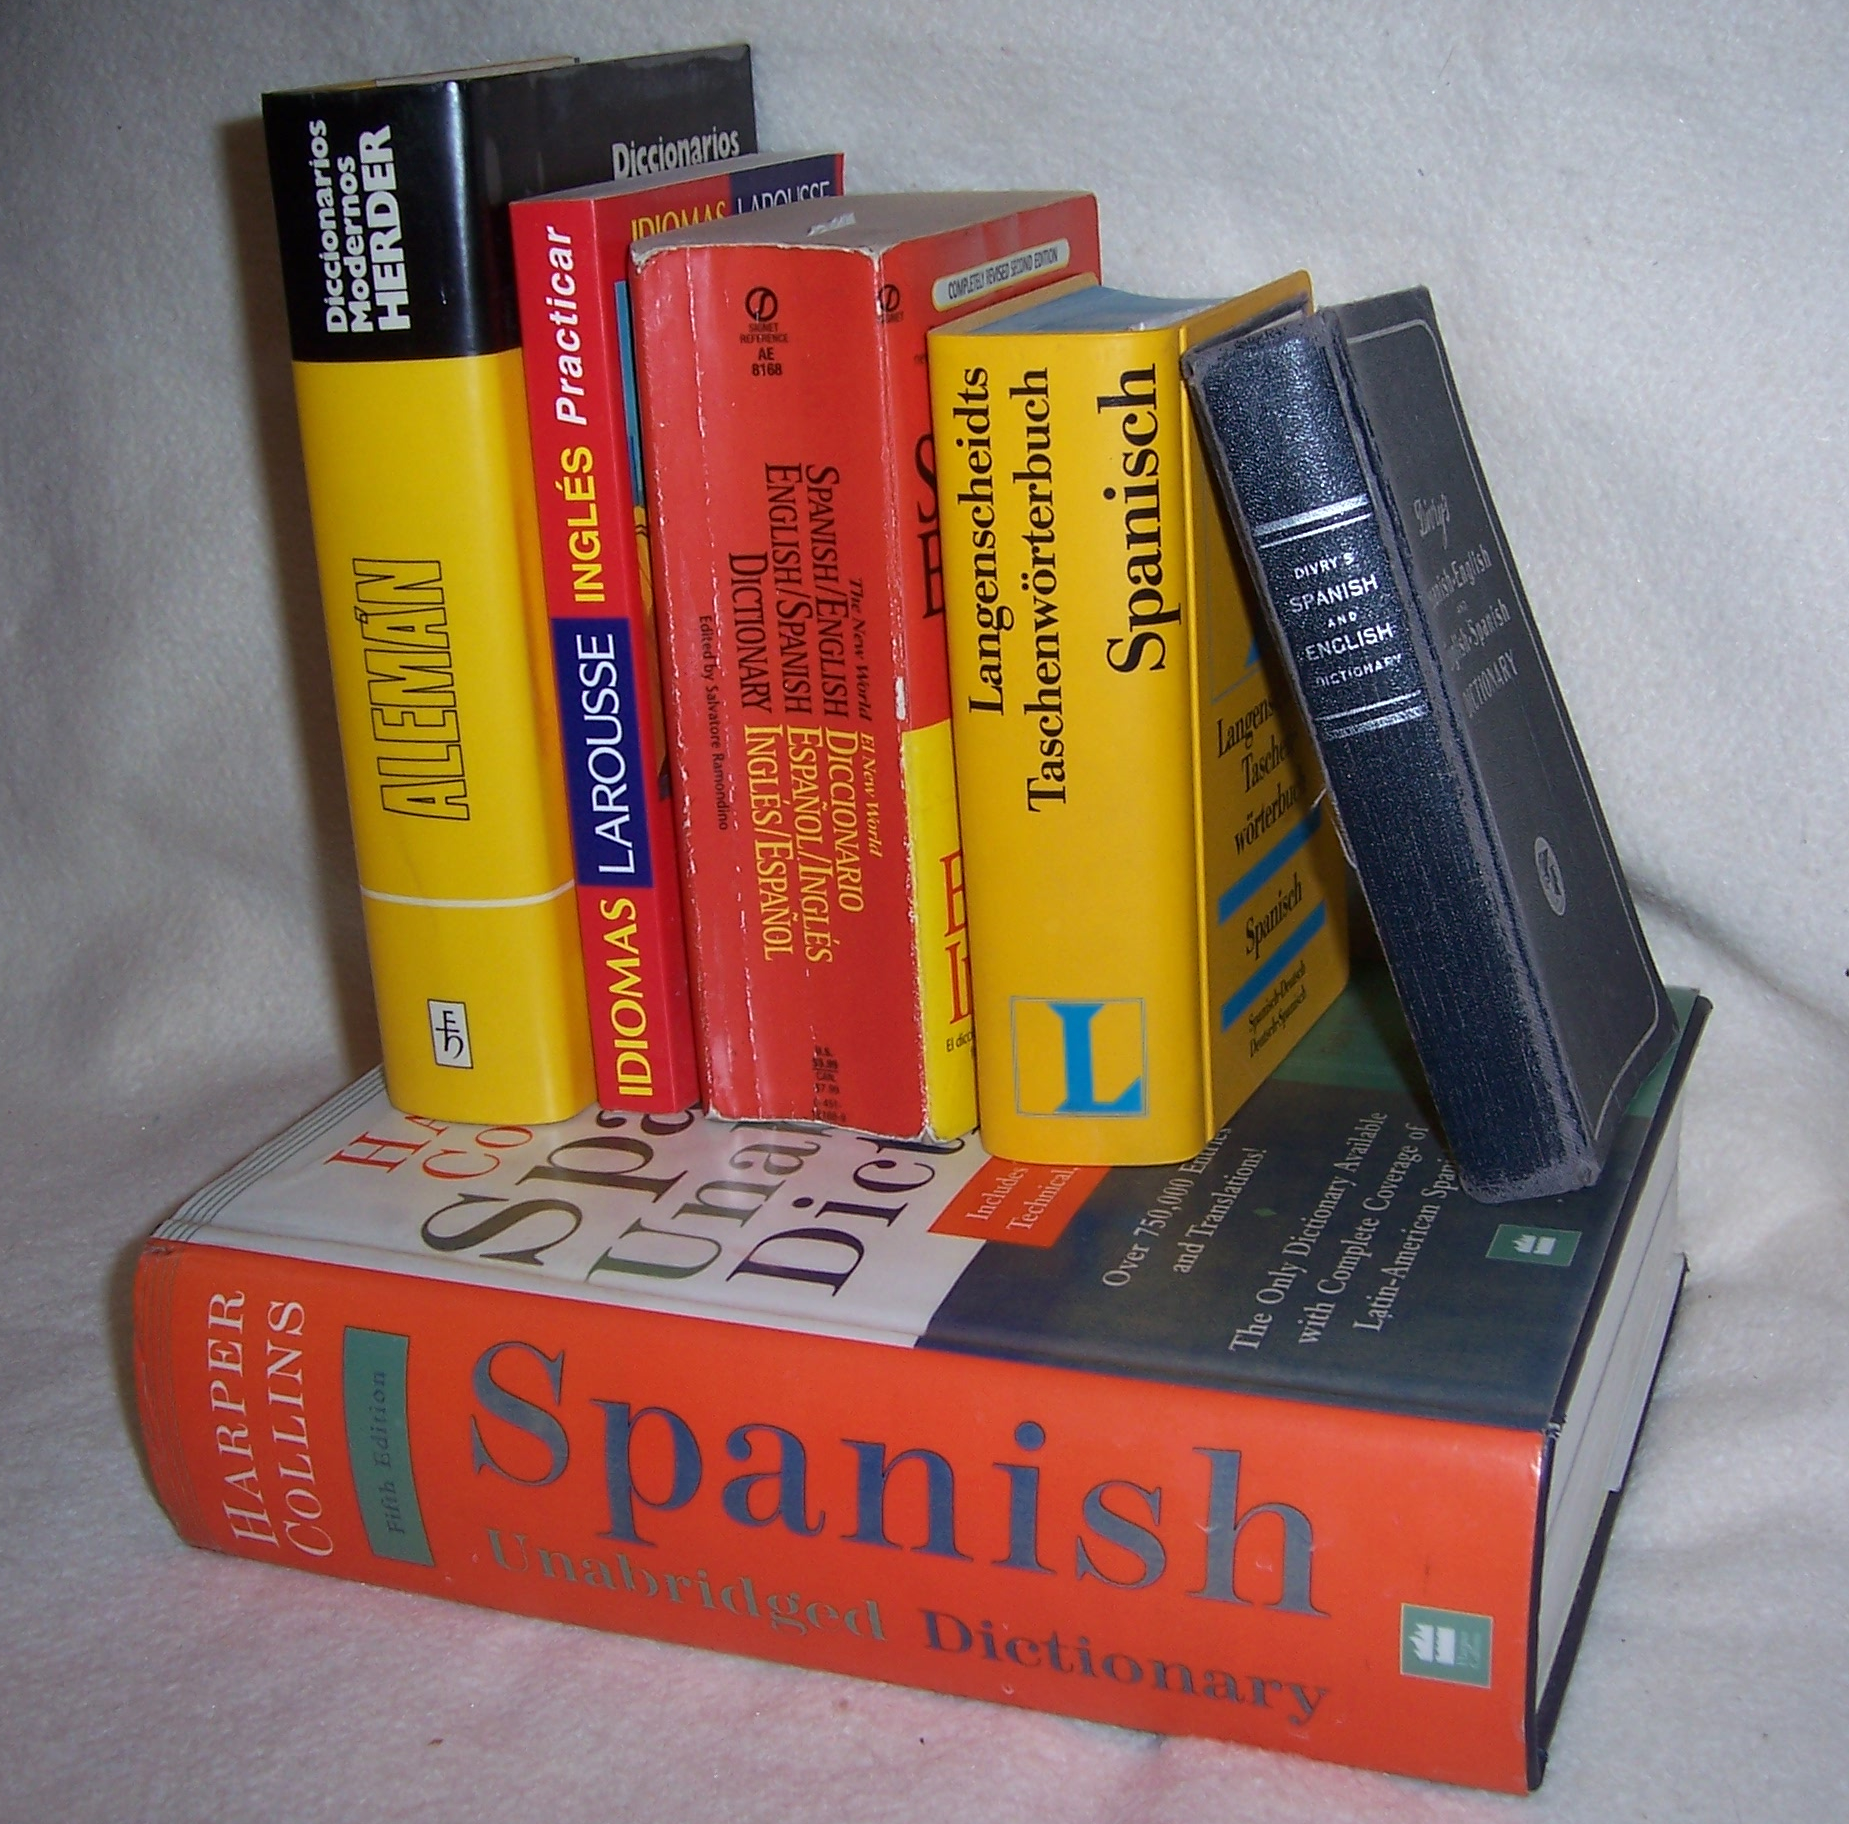 Bilingual Dictionaries; Image by LinguistAtLarge